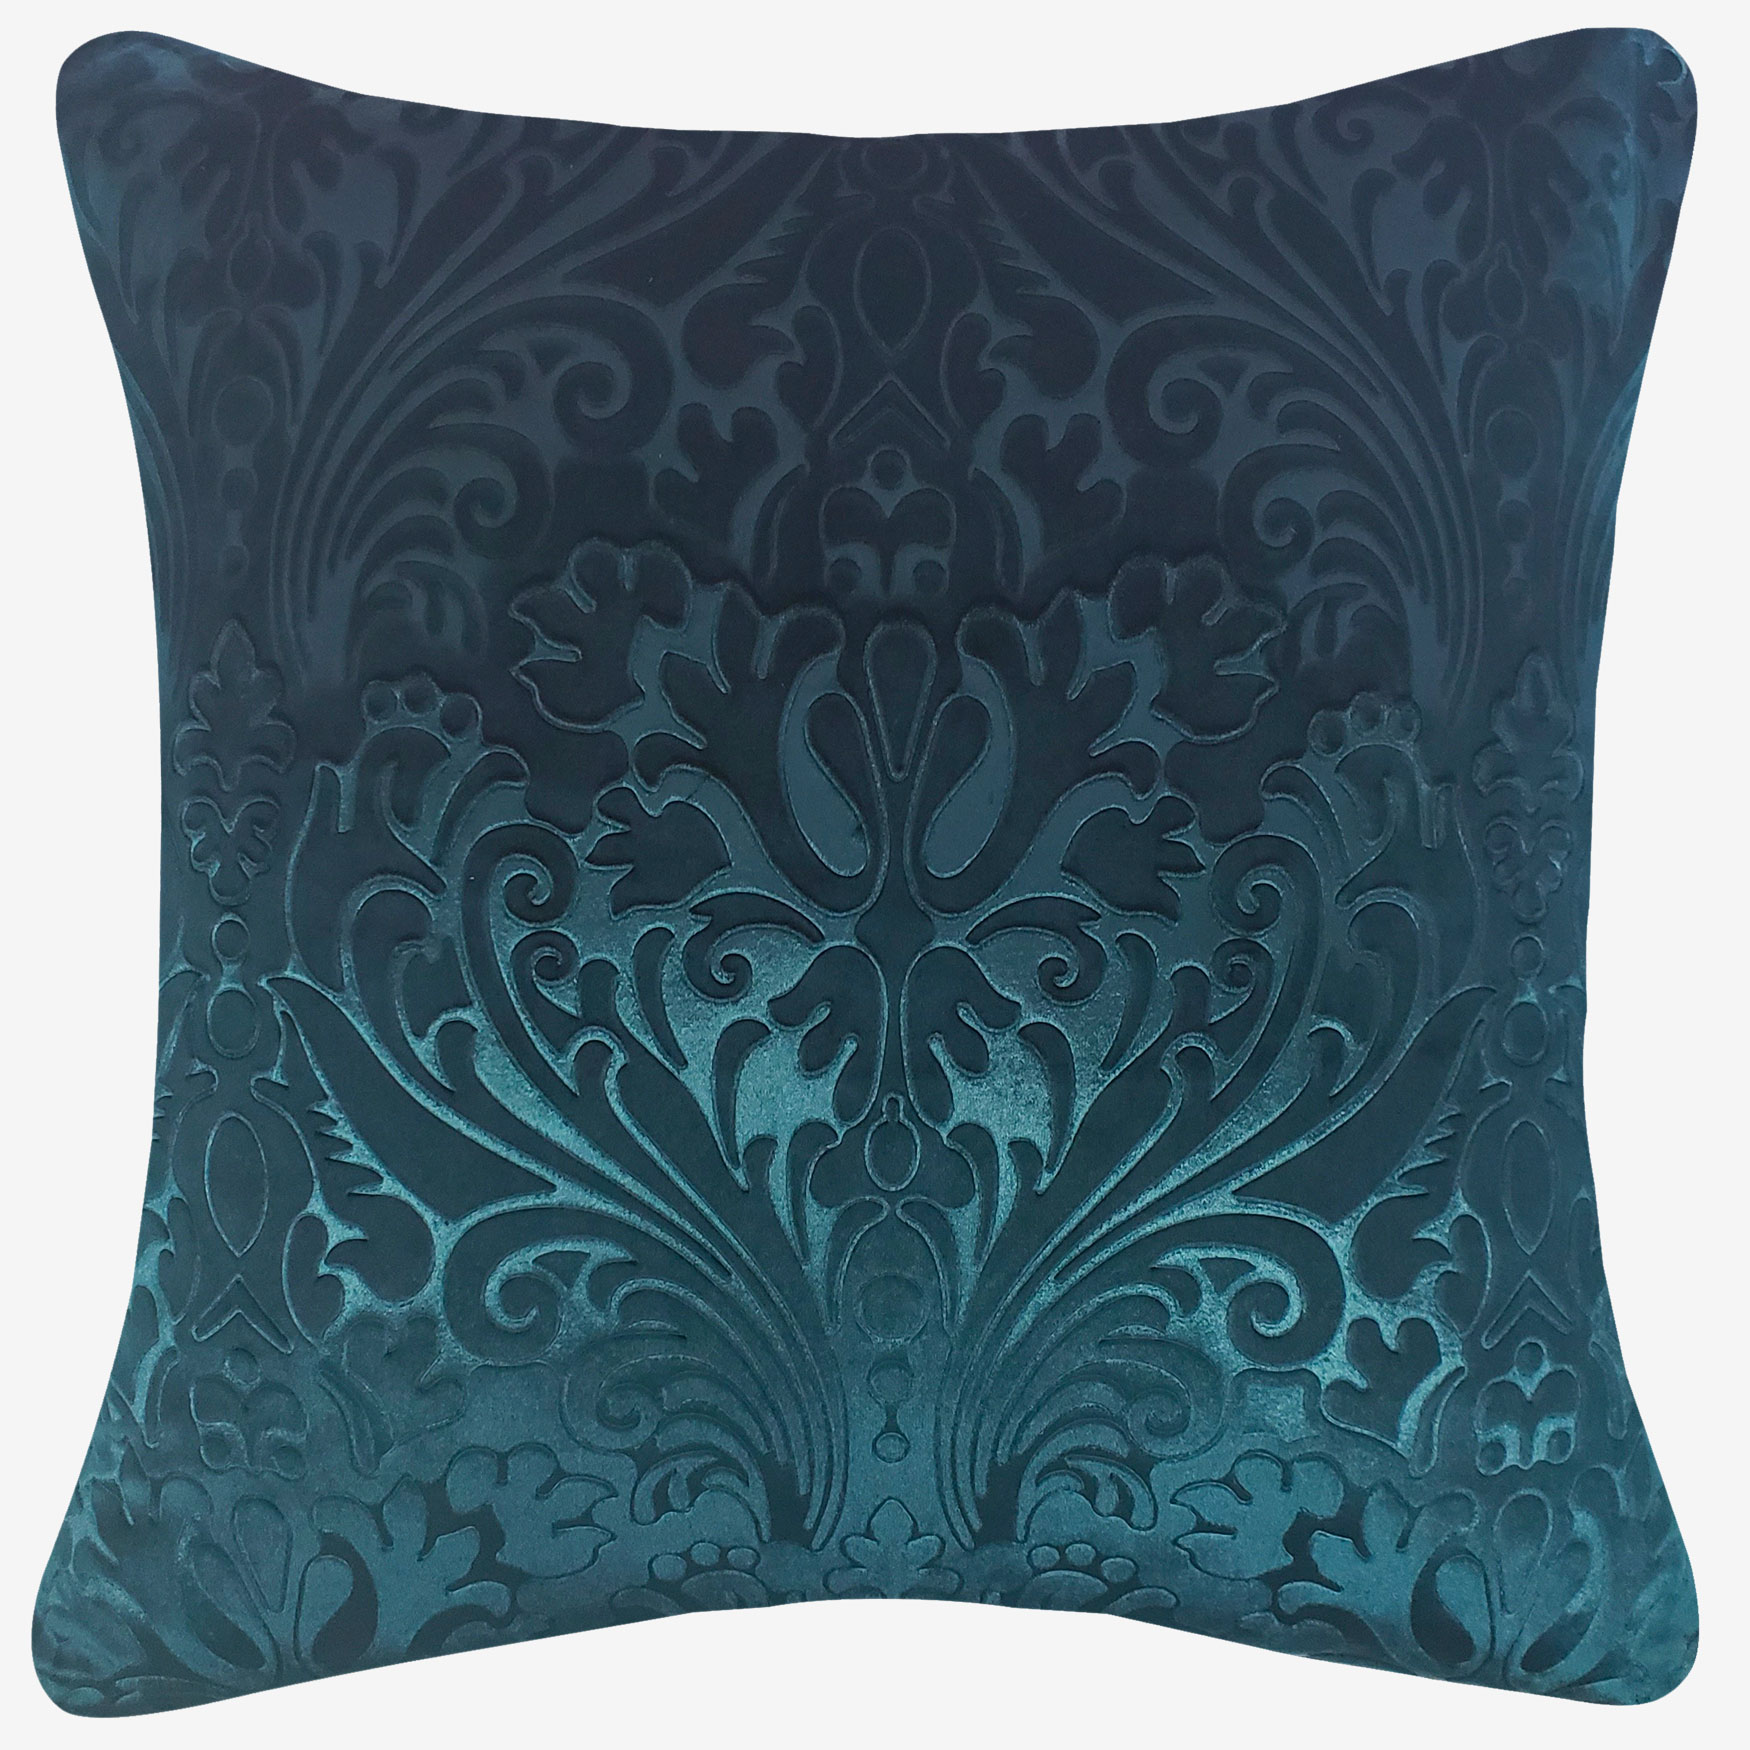 Sand Dollar Throw Pillow Cover Navy